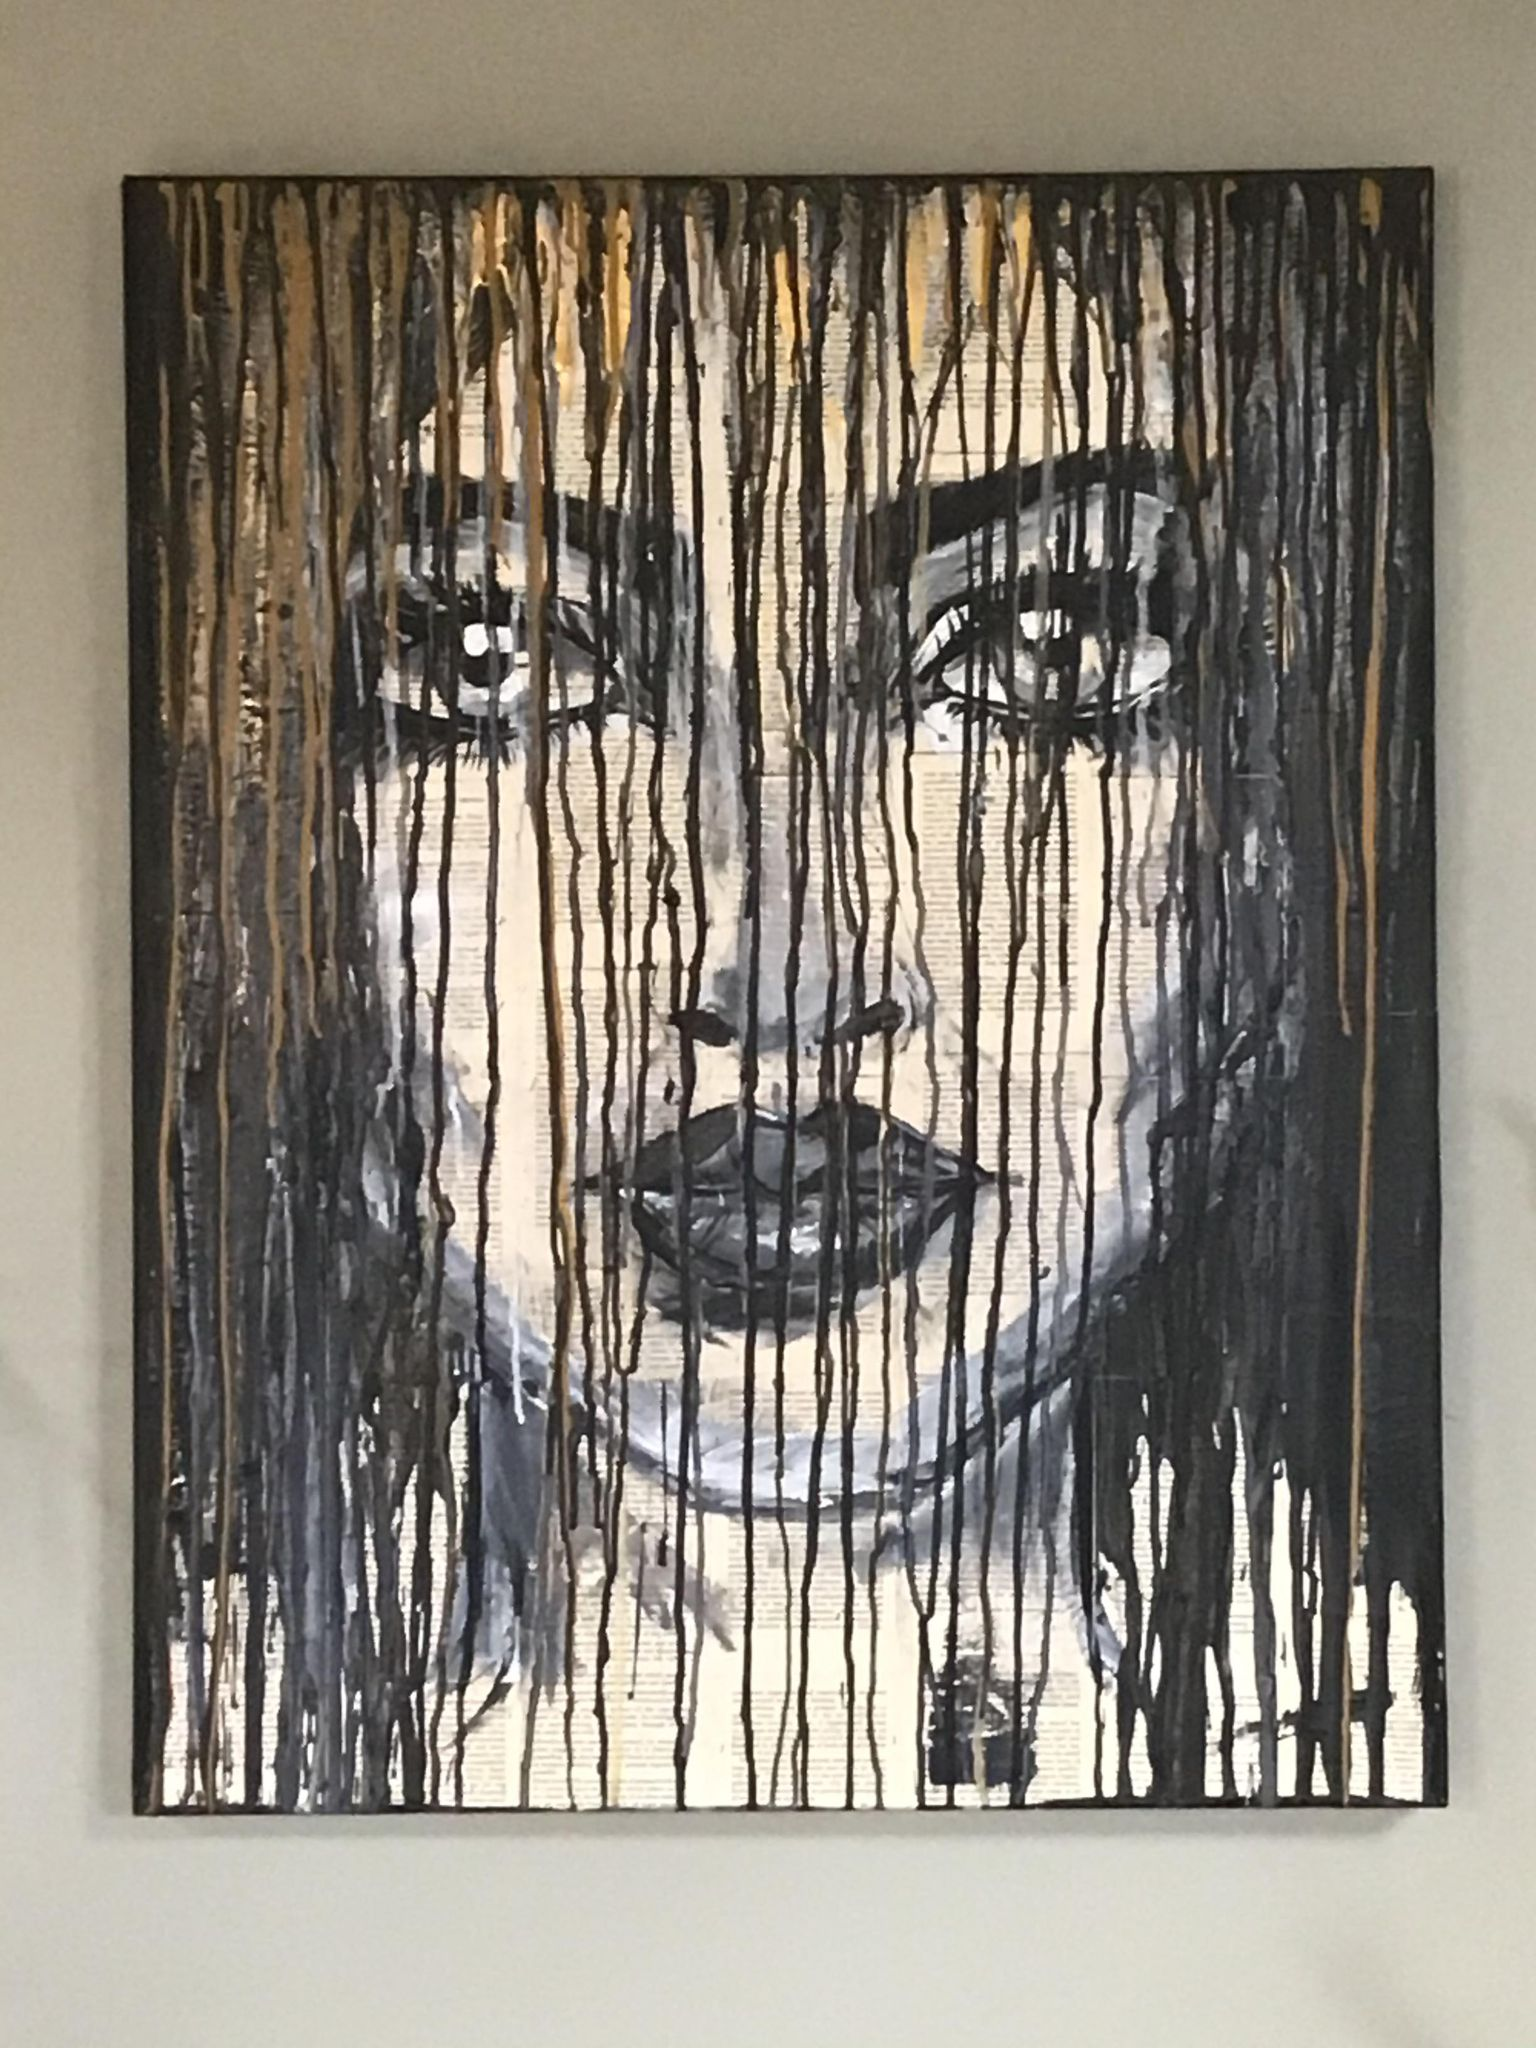 Reading Between The Lines artwork by Cabby Louise - art listed for sale on Artplode